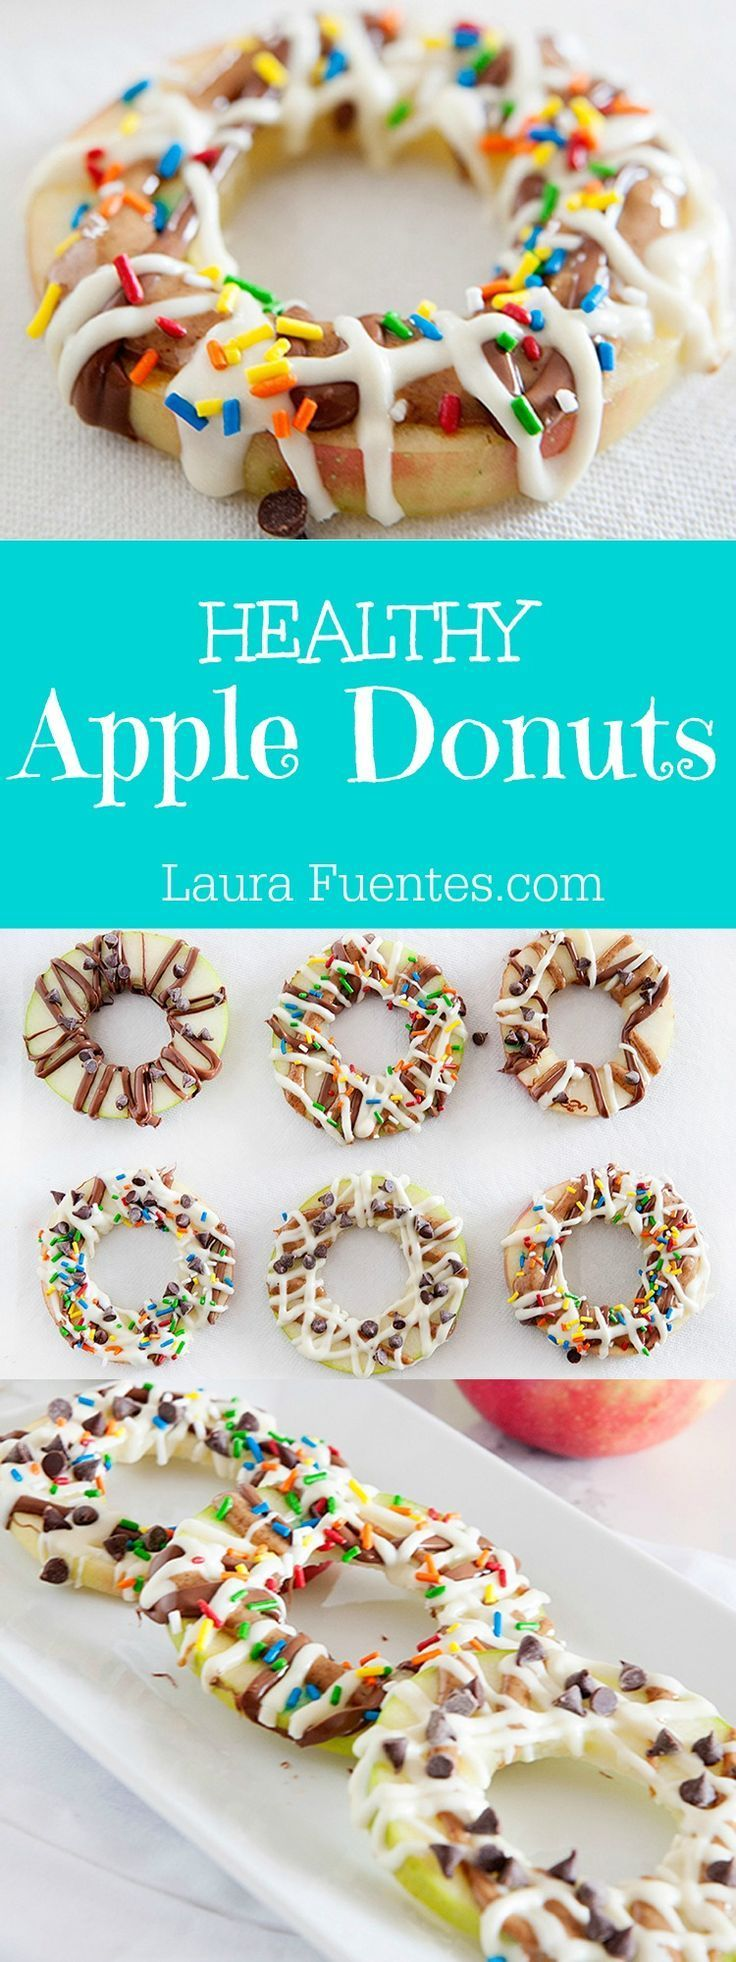 Apple Donuts - Healthy Snack Idea | Laura Fuentes